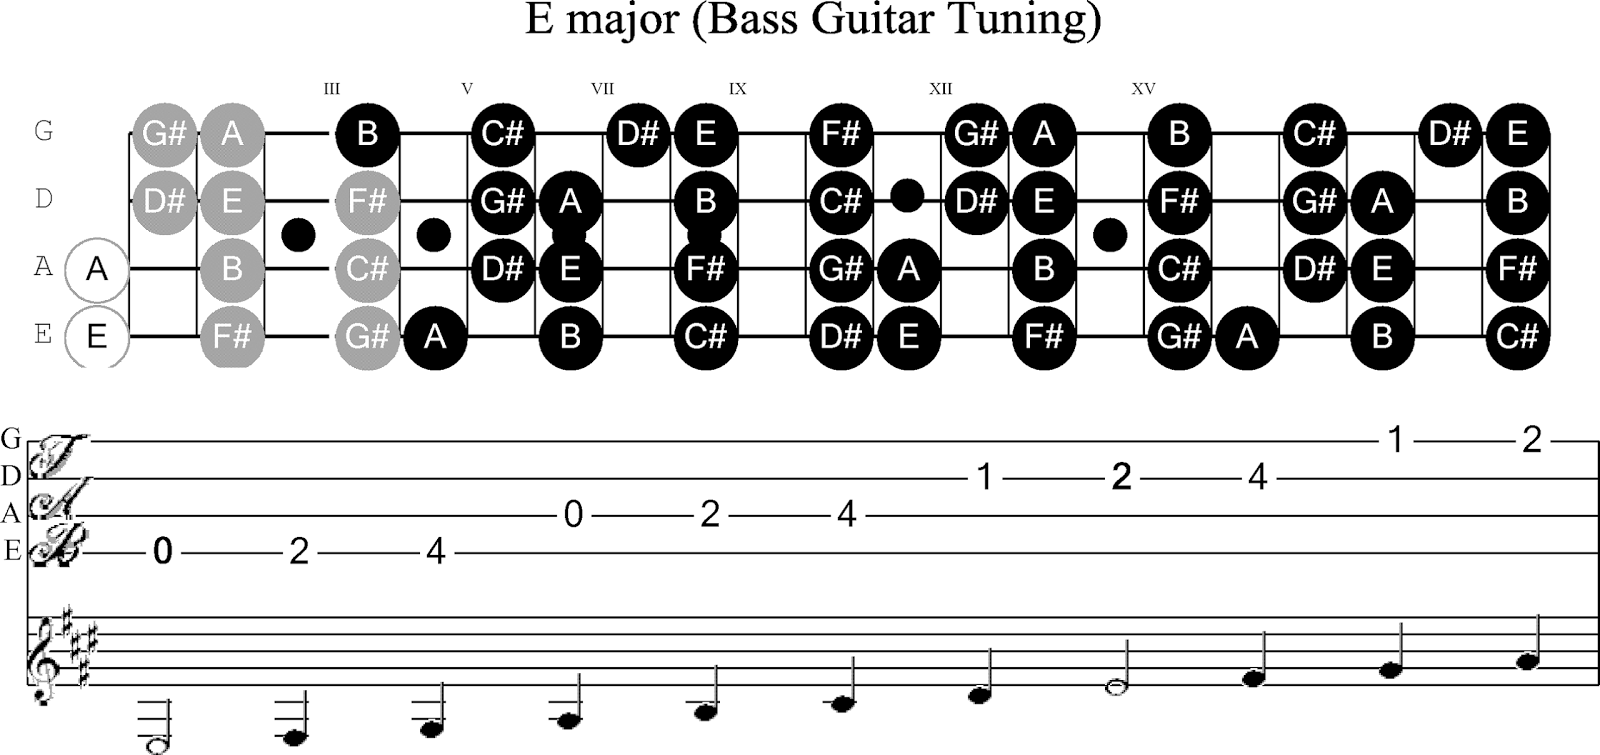 Bass Guitar Chord Chart Pictures to Pin on Pinterest - PinsDaddy